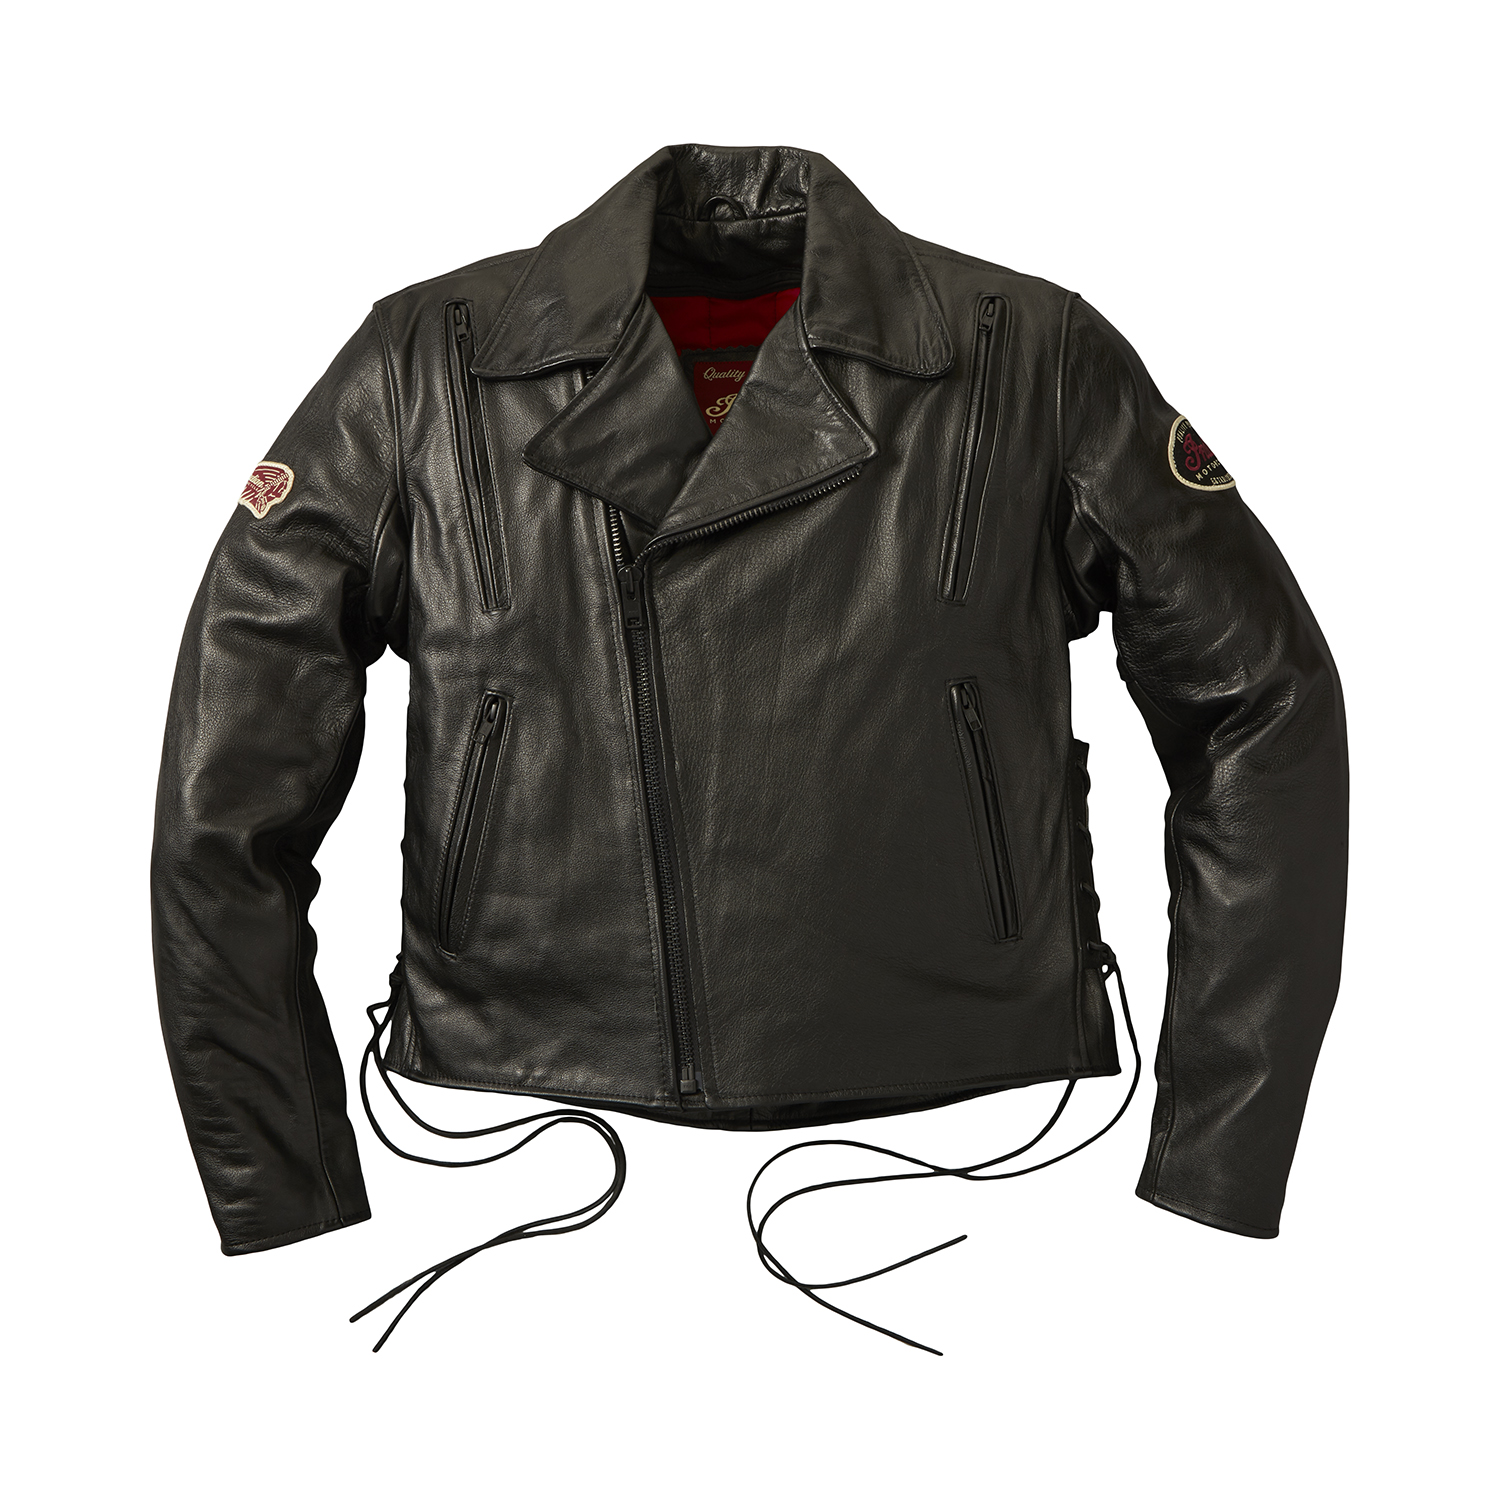 Men's Horsehide Leather Liberty Riding Jacket with Removable Lining, Black